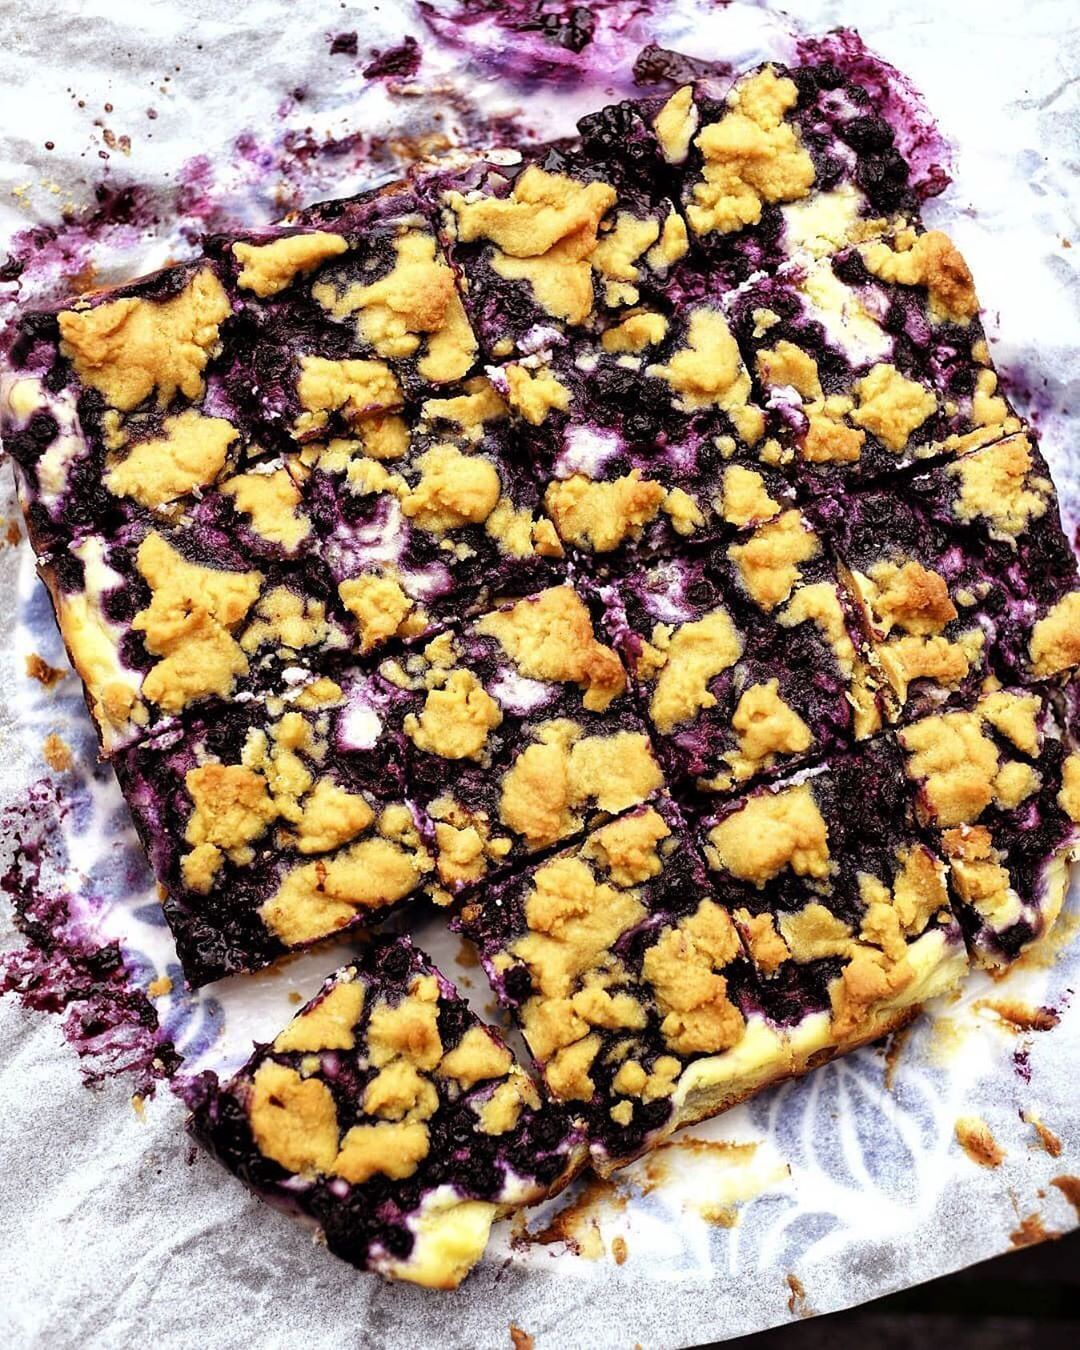 Blueberry pie bars recipe at first glance these bars may